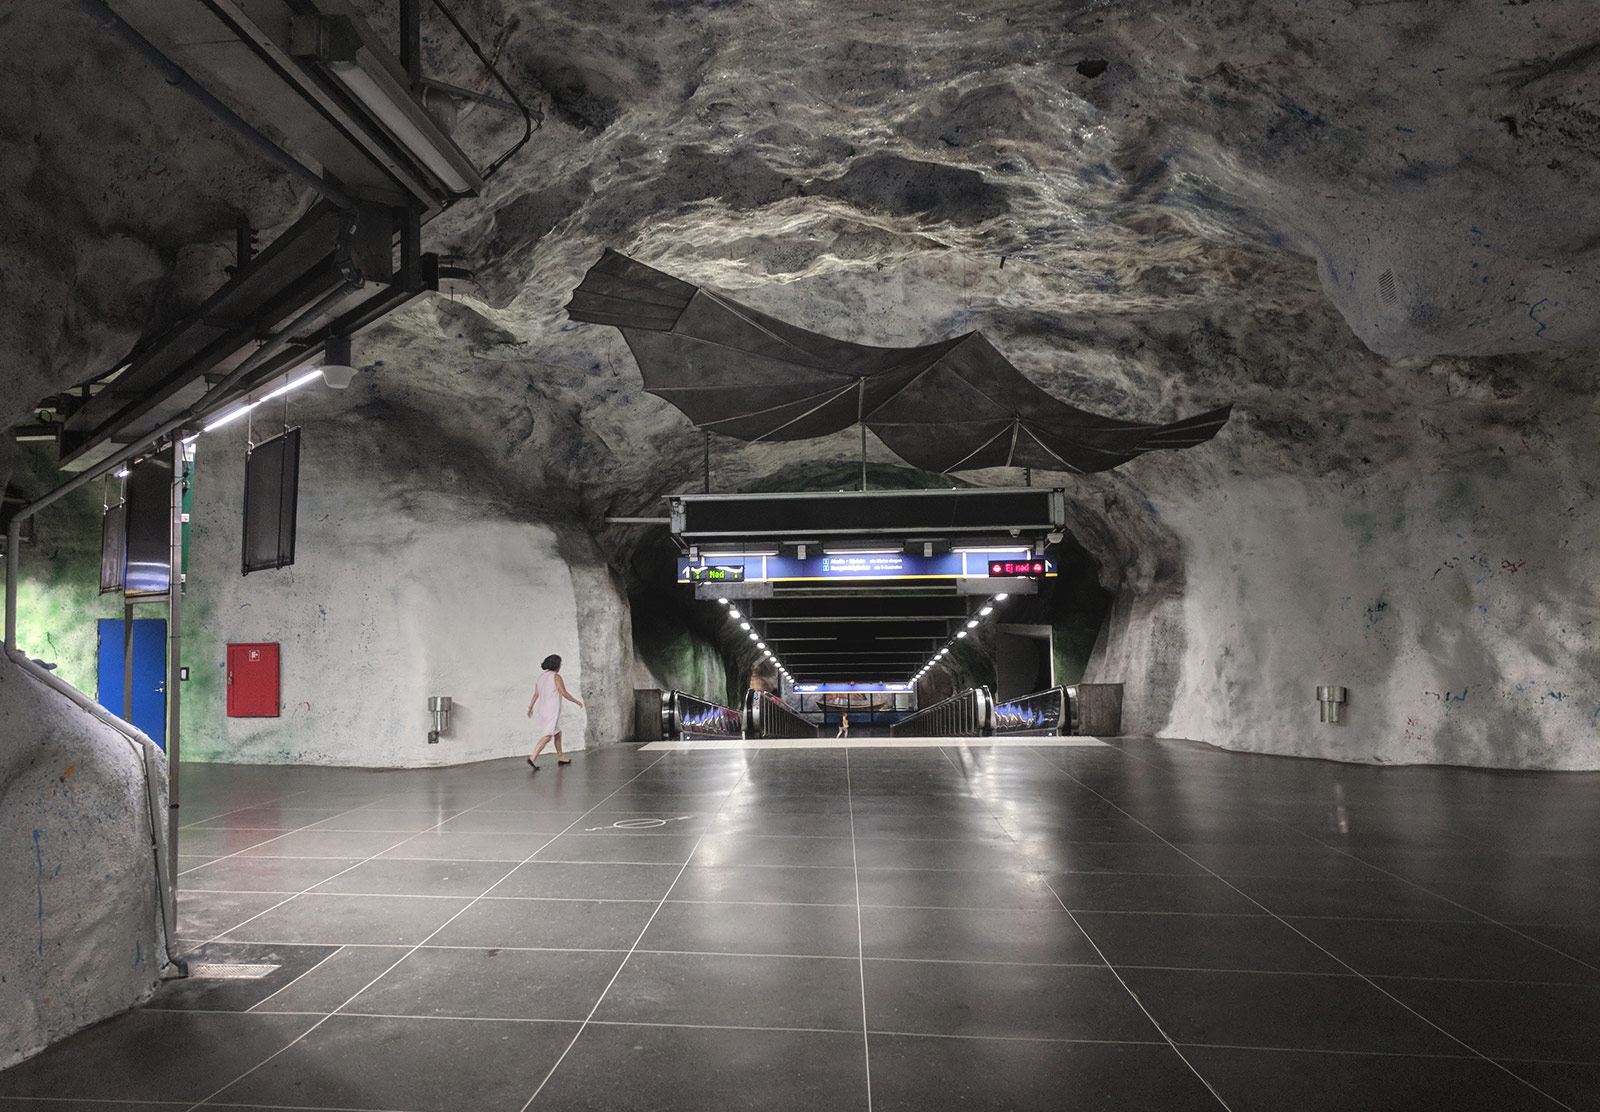 Subway tunnelmade from stone